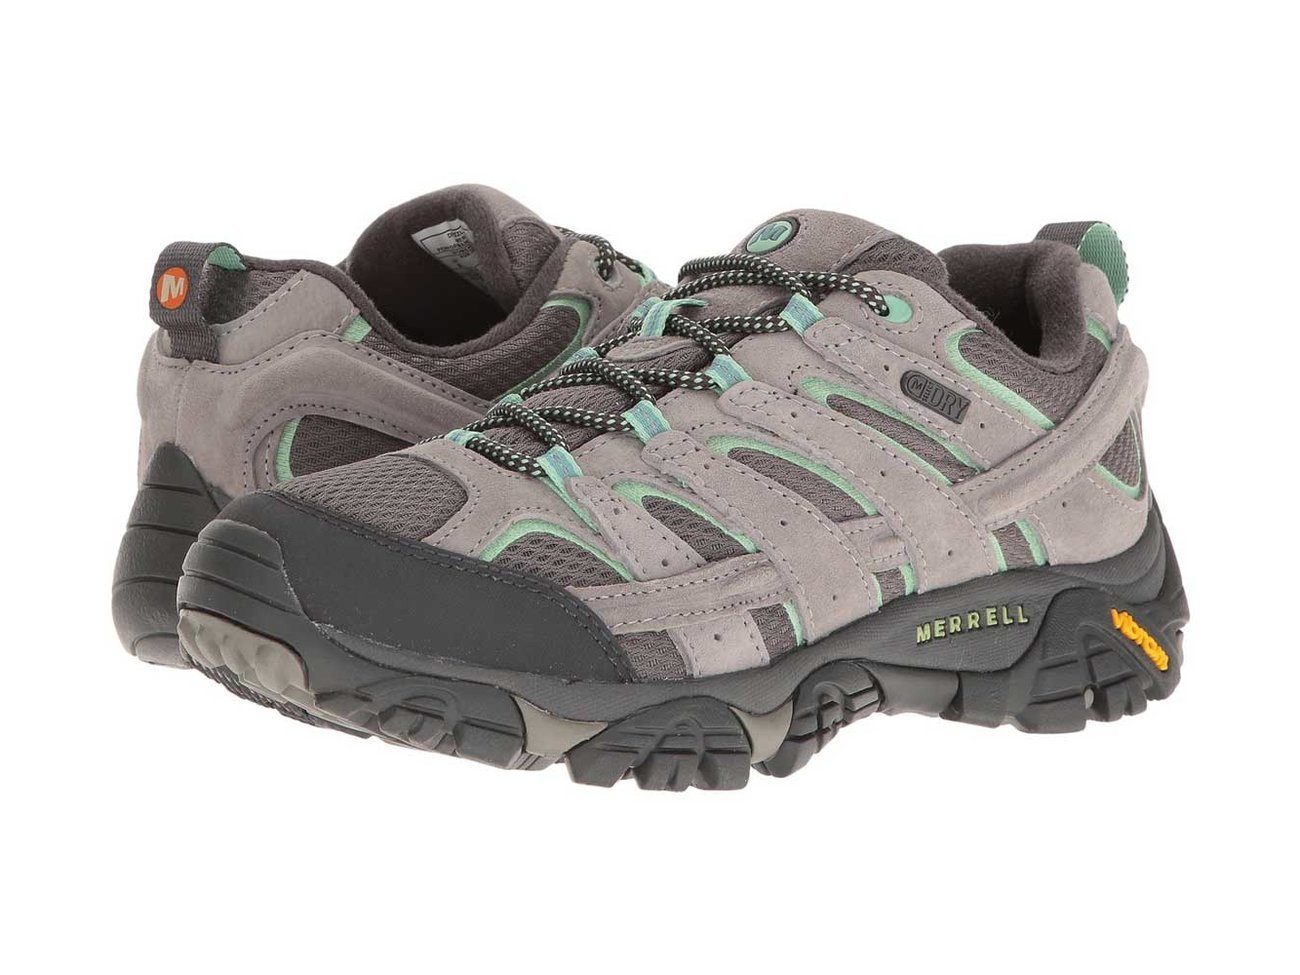 9708cfd0c932e Best for Muddy or Wet Trails  Merrell Moab 2 Waterproof Hiking Shoe